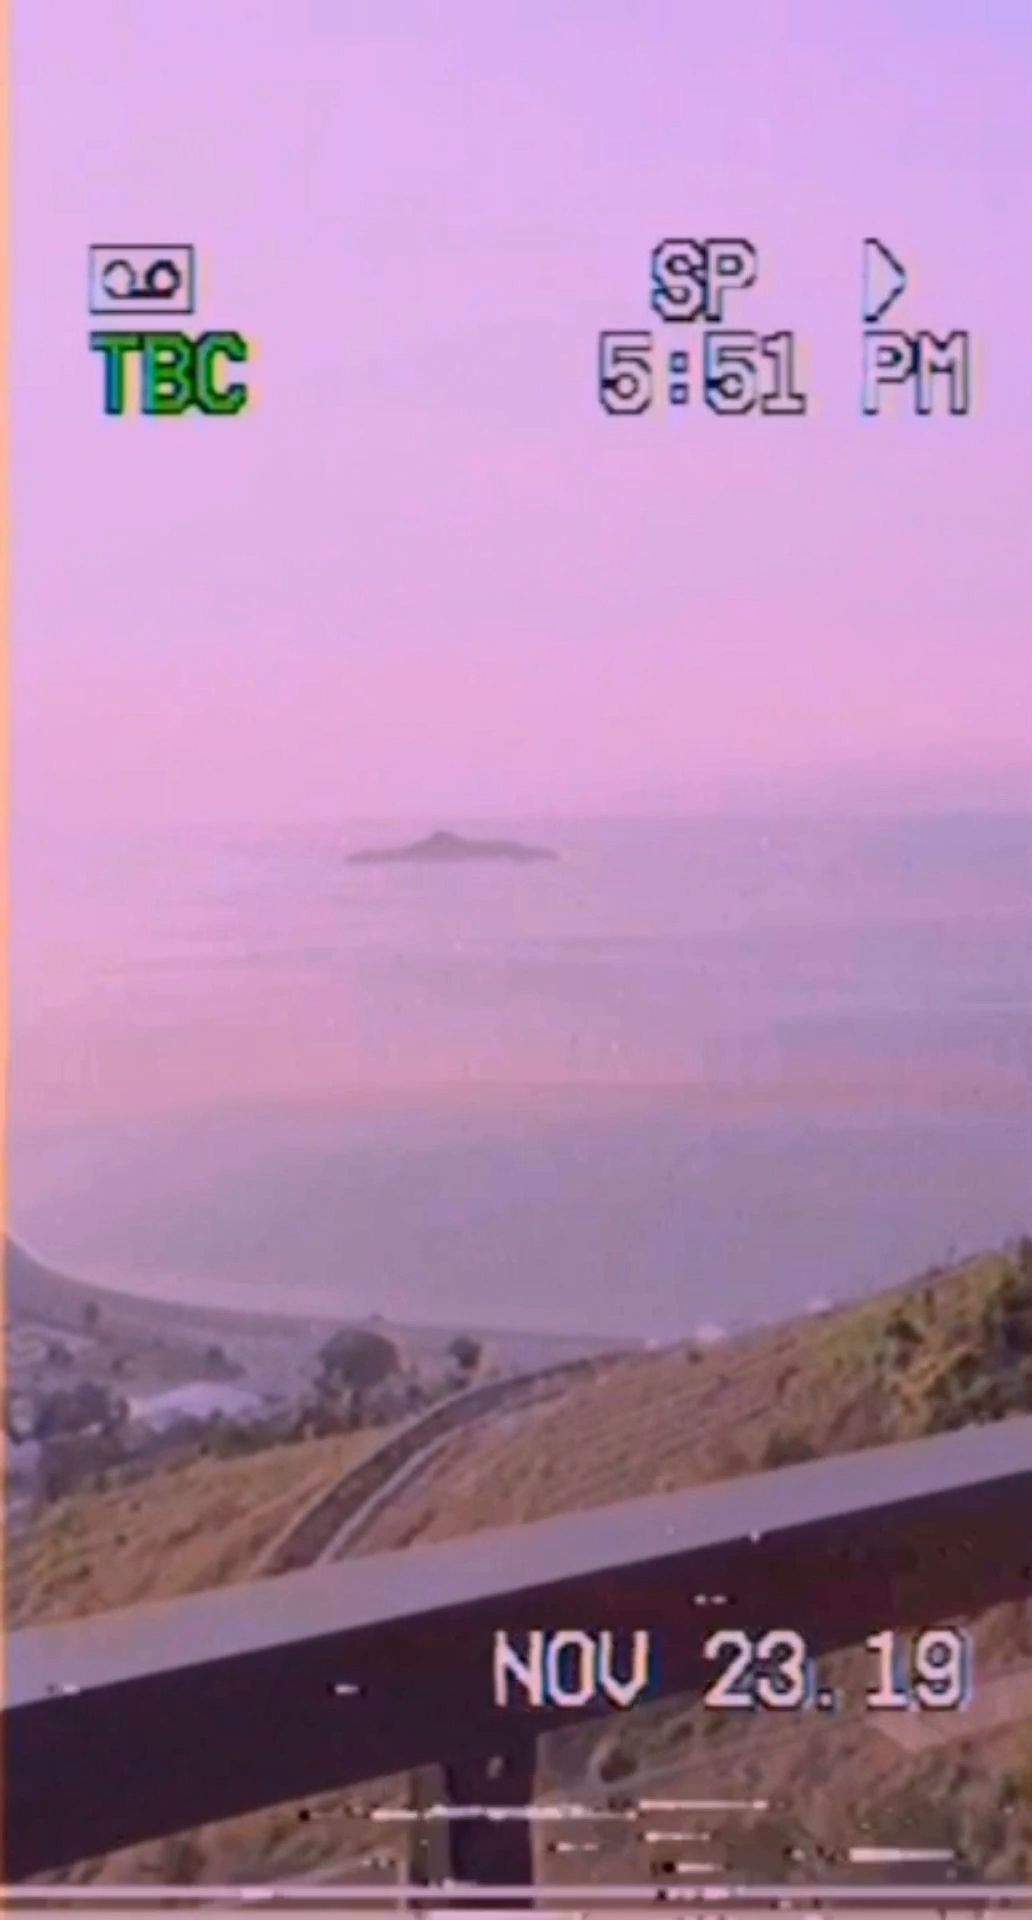 Vhs Vintage Aesthetic Save Aestheticedits Sunrise Adventure Aesthetic Sky Aesthetic Aesthetic Movies